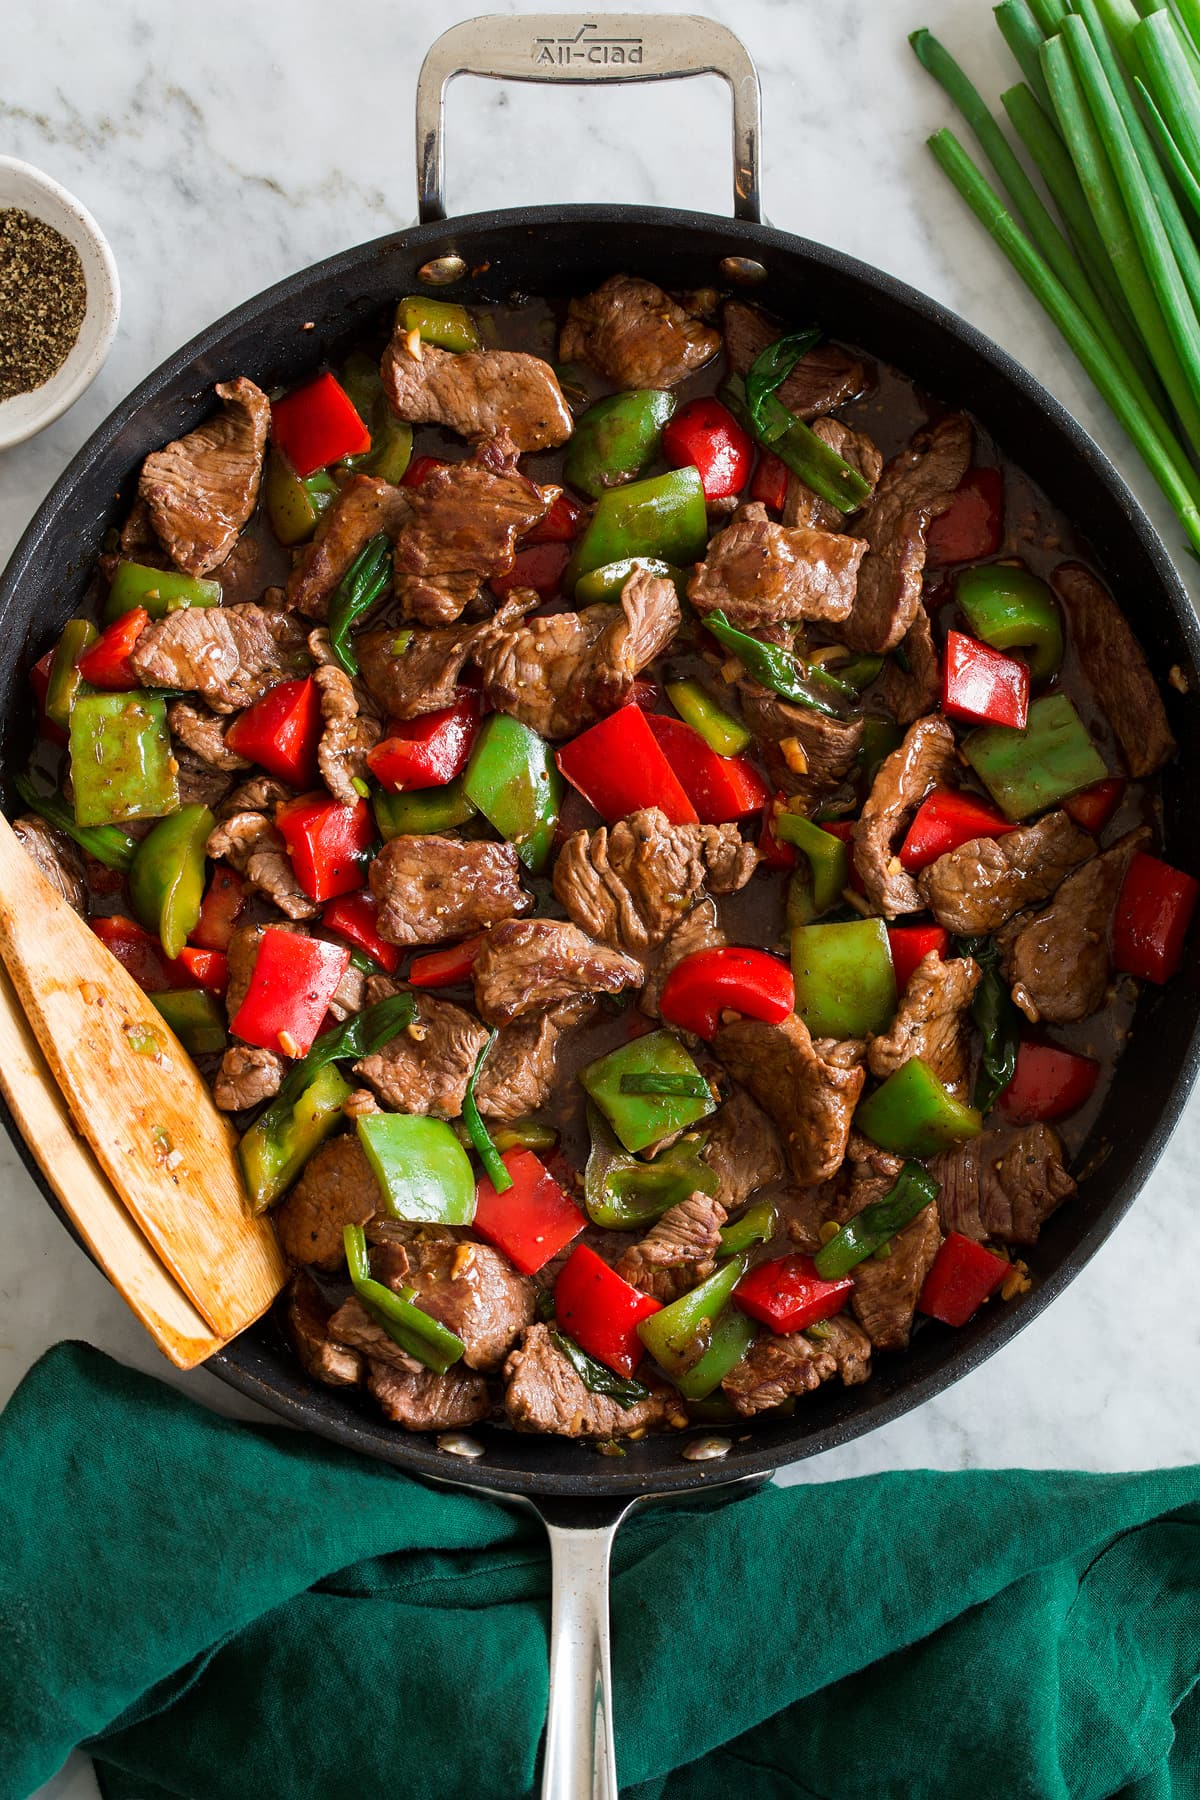 Photo: Pepper steak and bell peppers shown in a dark skillet from above.